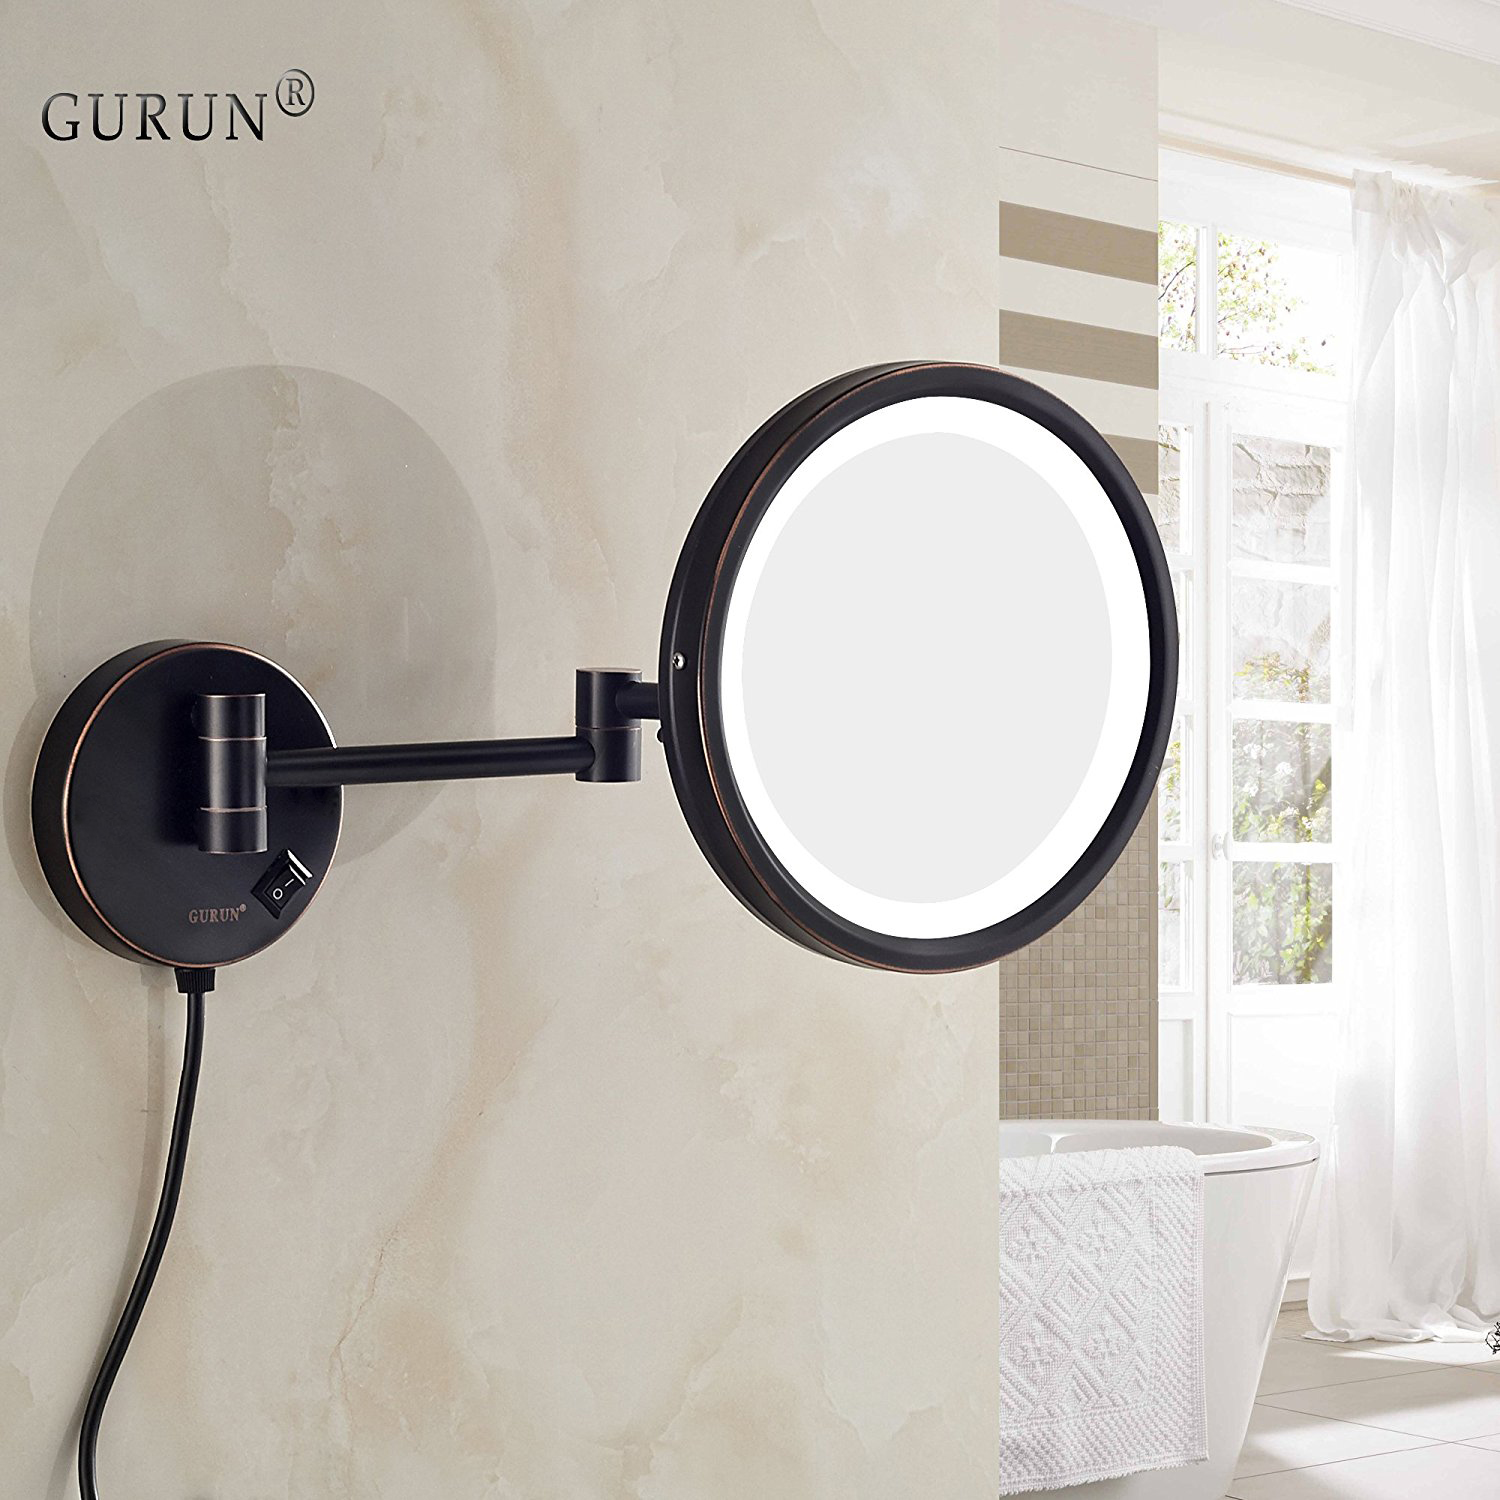 Gurun Bath Wall Mount Lighted Makeup Mirror With 7x